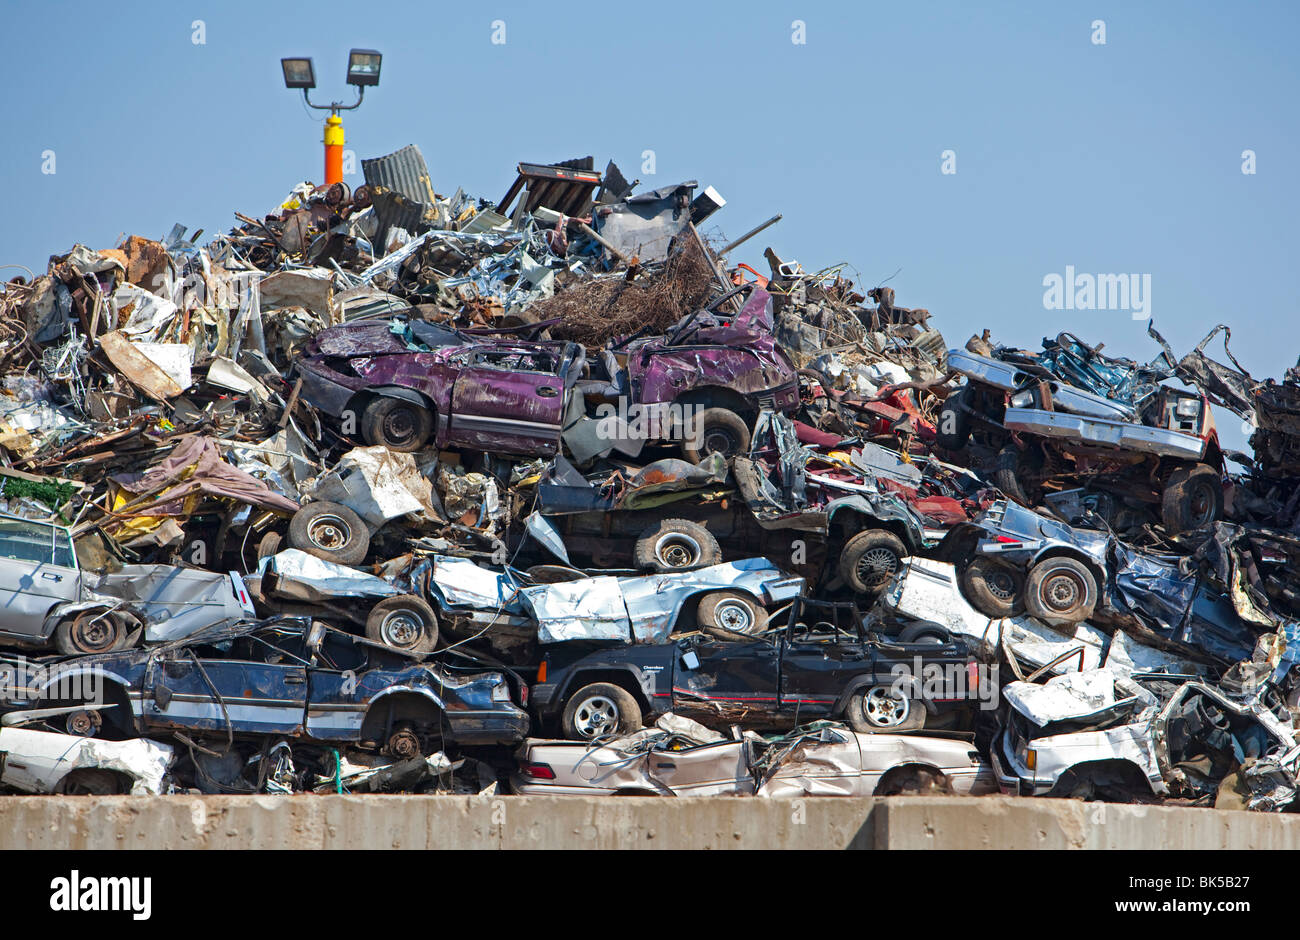 Detroit, Michigan - Junk cars crushed and ready for recycling at a scrap yard. Stock Photo